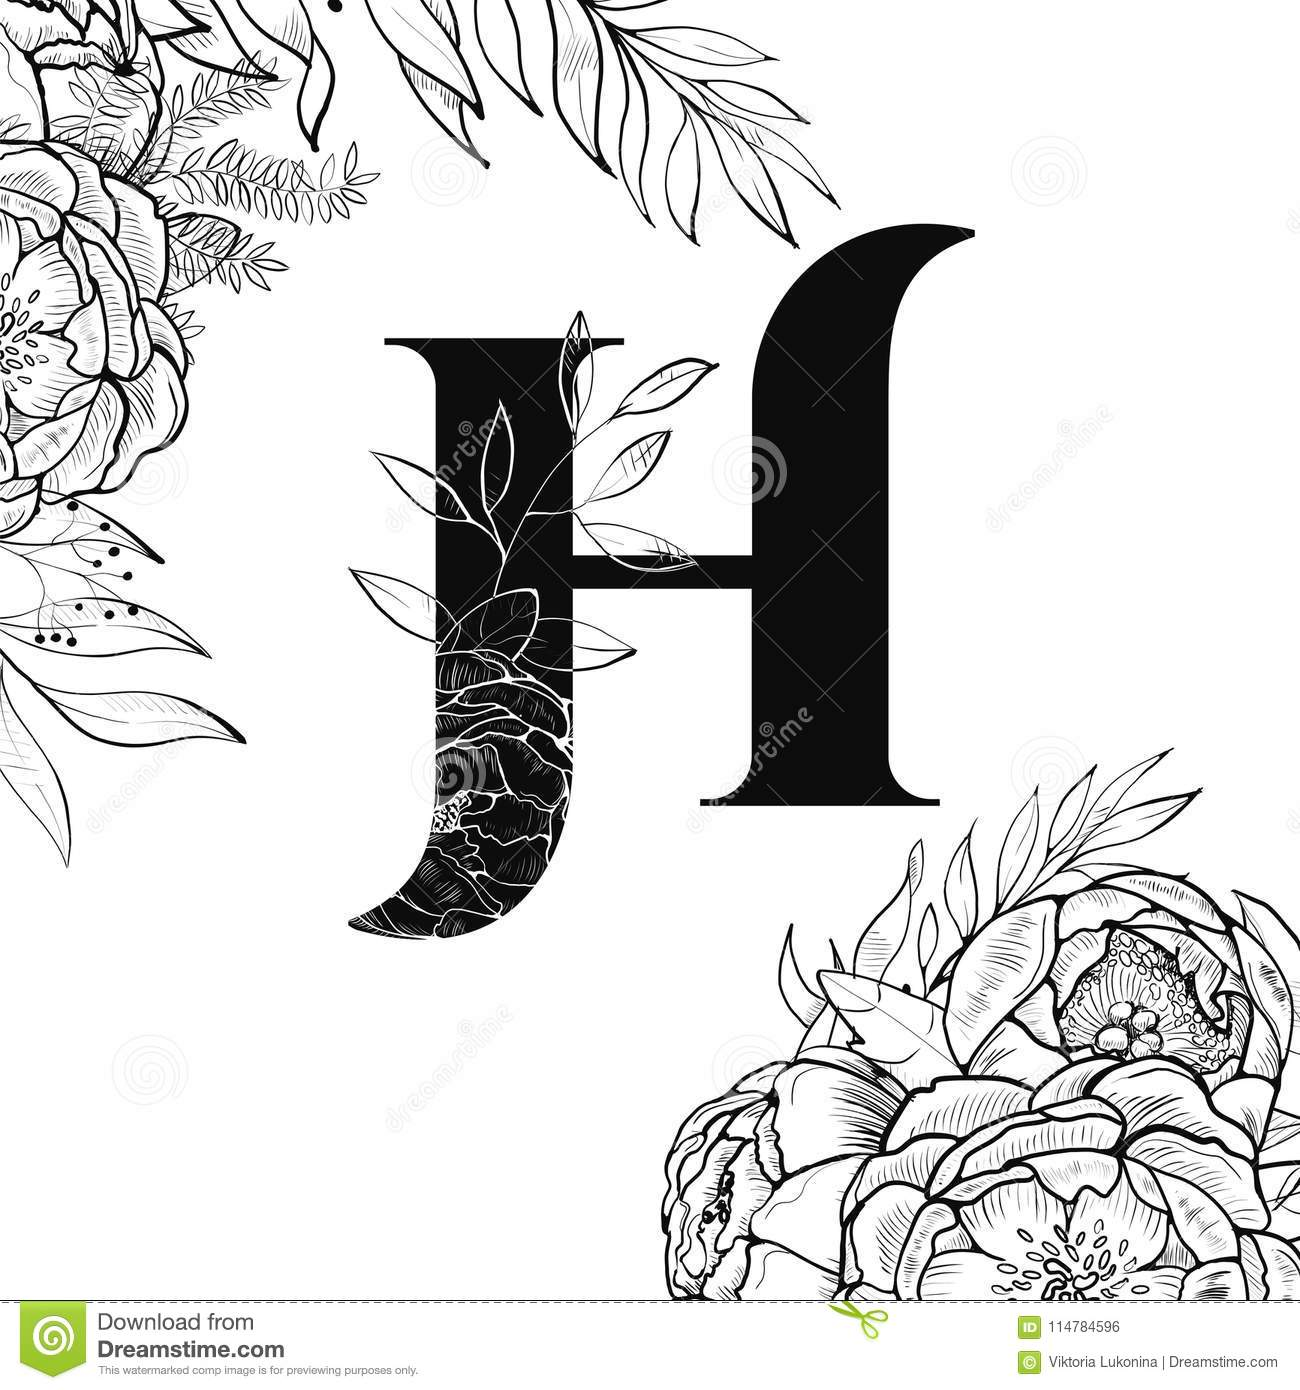 Flower Alphabet Letter H Pattern Stock Vector - Illustration ... on monogram letter template, fancy old english letter k, letter b template, fancy lowercase k, fancy monograms letter k, fancy graffiti letters, fancy letters d designs, letter y template, fancy letter k designs, fancy letter k wallpaper, fancy initial monogram fonts, printable letter m template, fancy script lettering, letter o template, fancy script letter k, fancy lettering fonts, kangaroo template, fancy calligraphy fonts, letter z template,